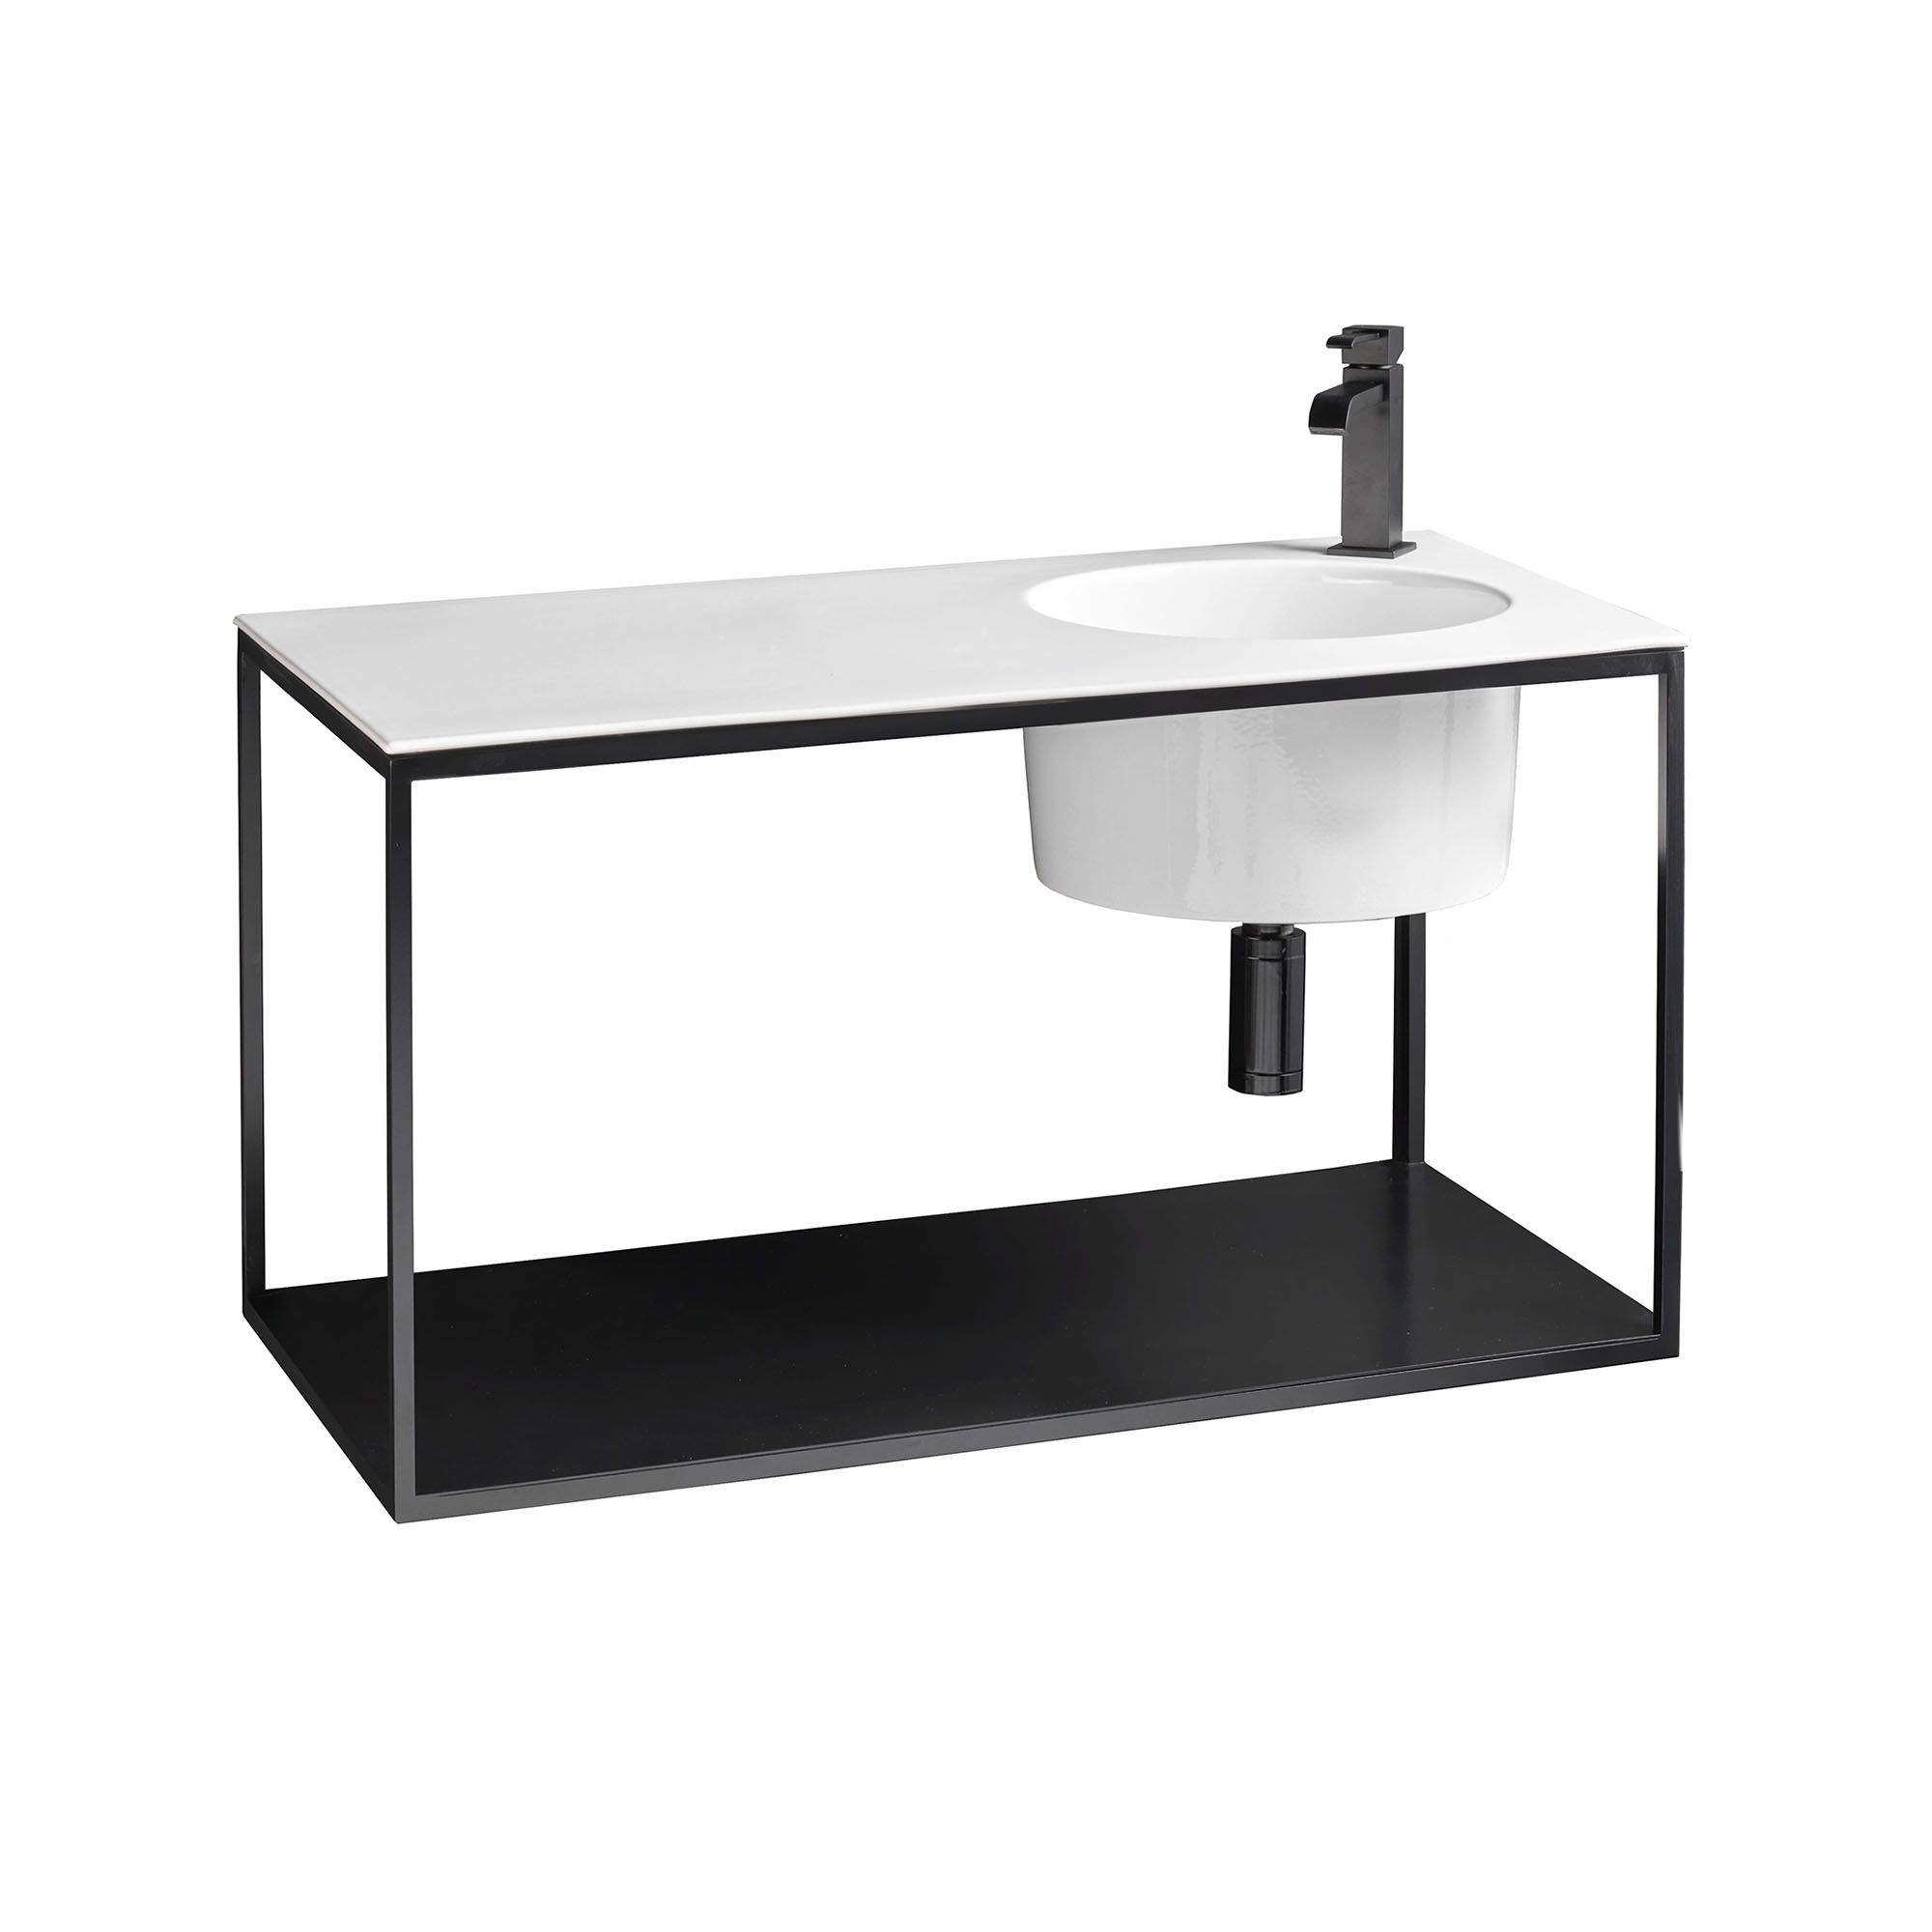 Skyland 32137.01+CP488009 Wall Mounted Bathroom Vanity